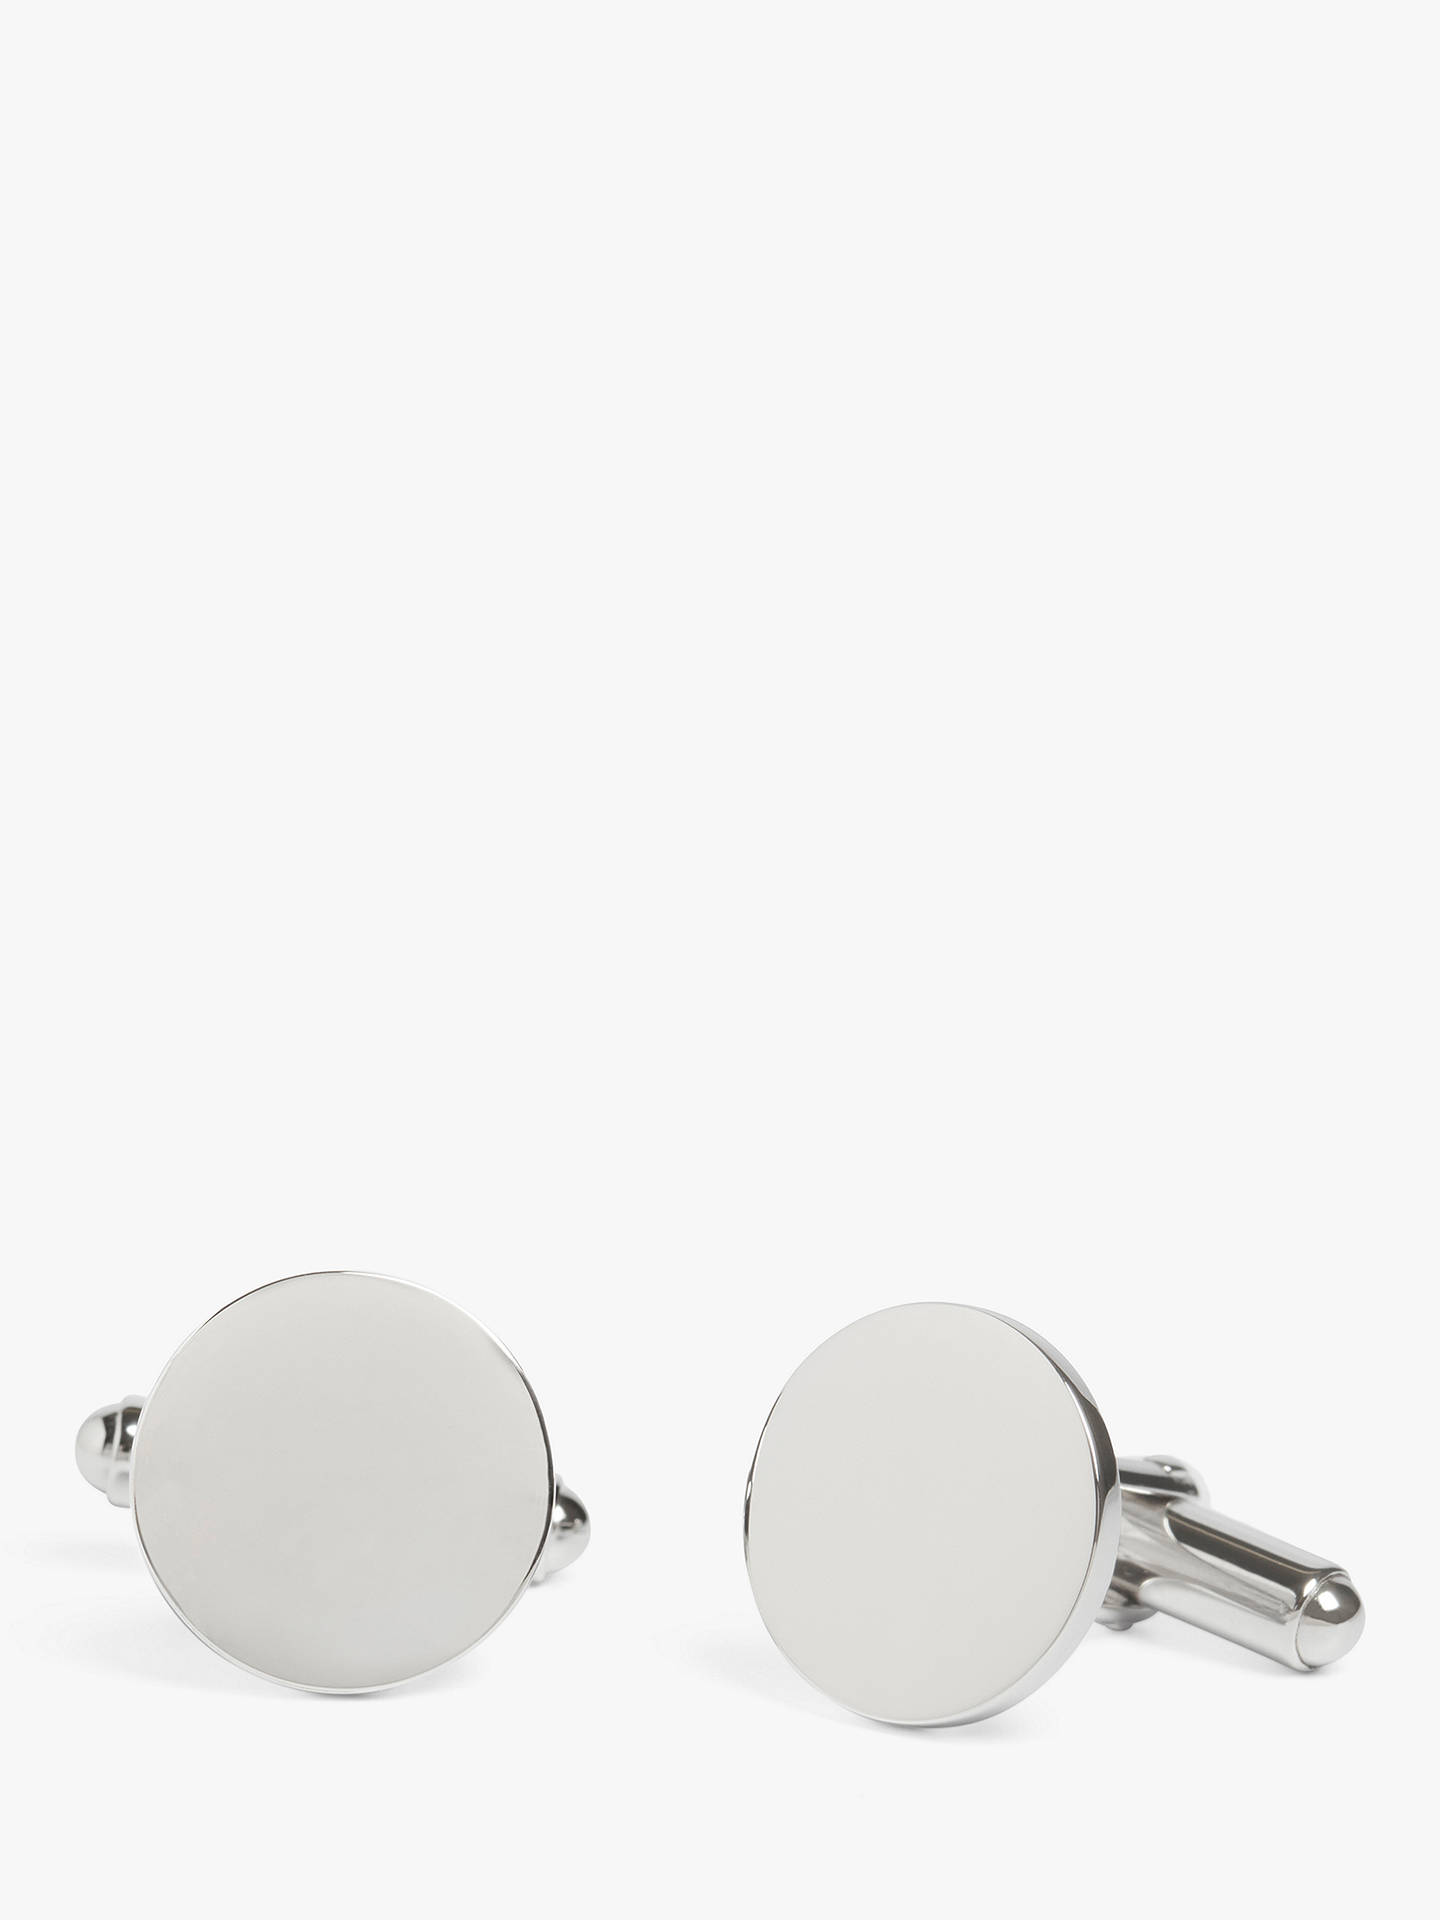 BuySimon Carter for John Lewis Sterling Silver Round Cufflinks Online at johnlewis.com